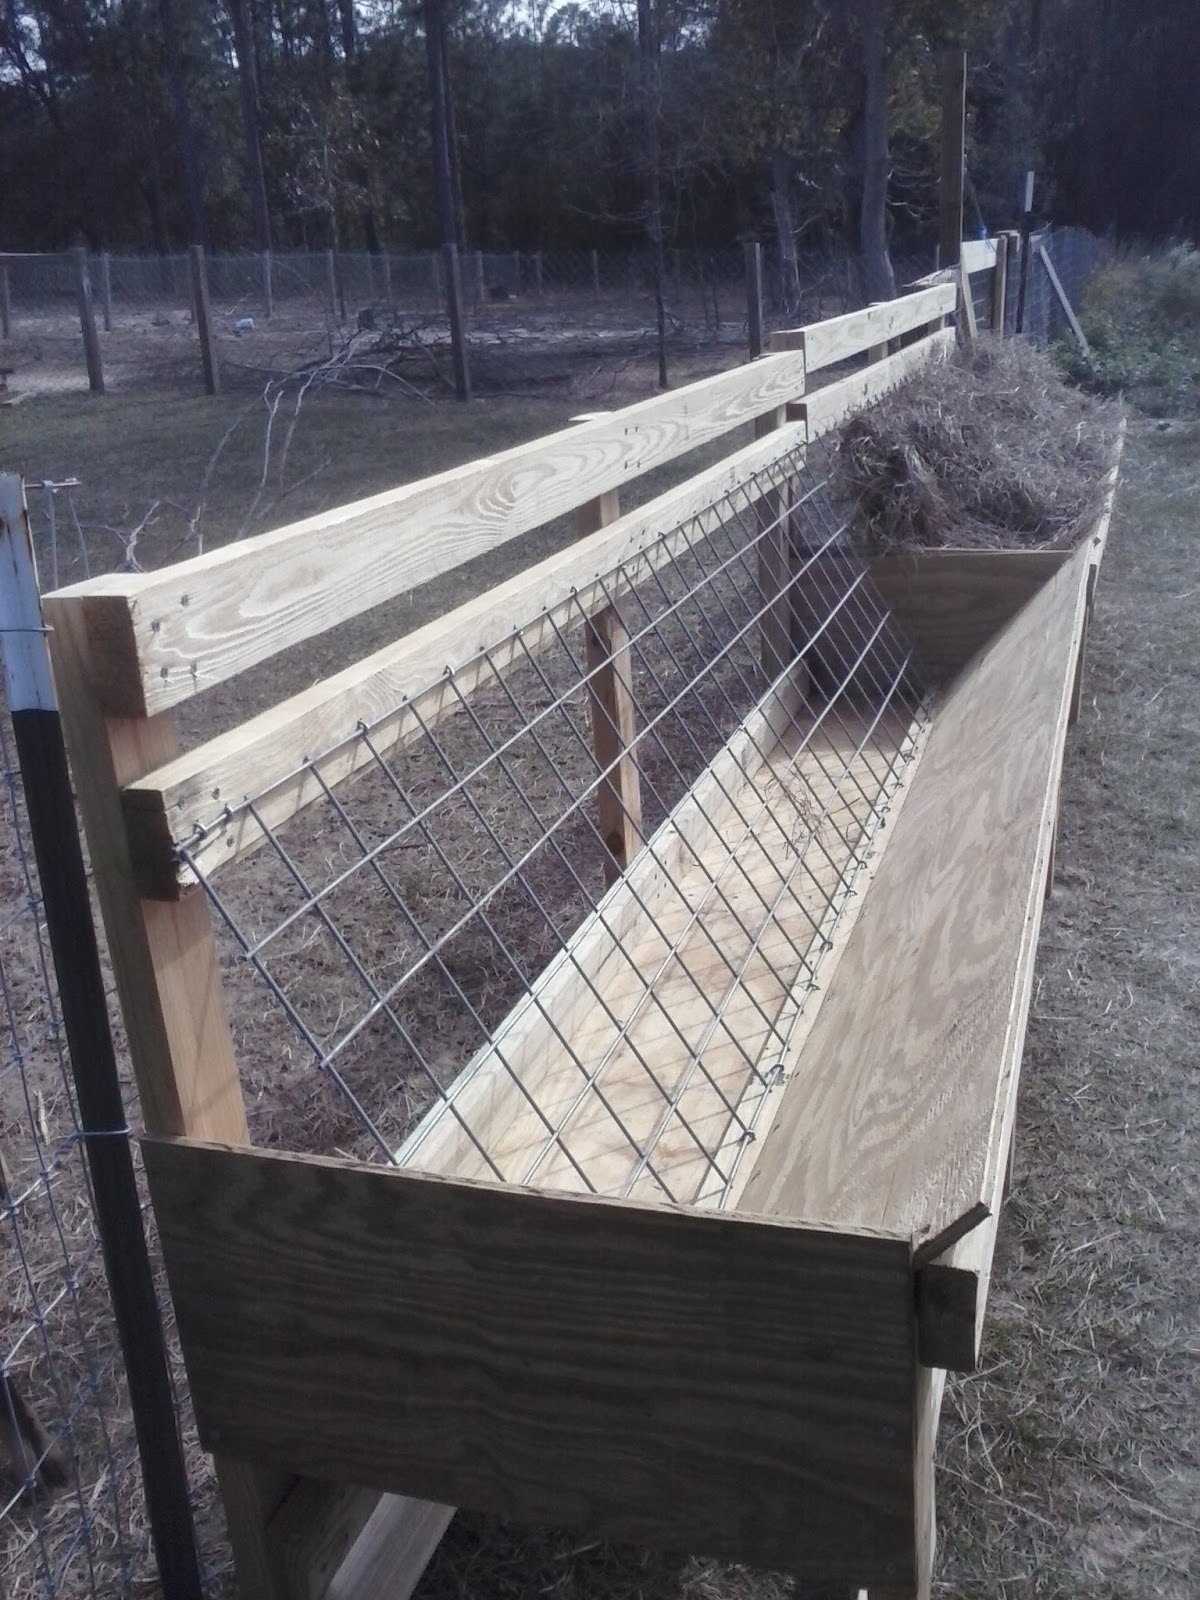 Challenged Survival The Best Hay Feeder For Goats In The